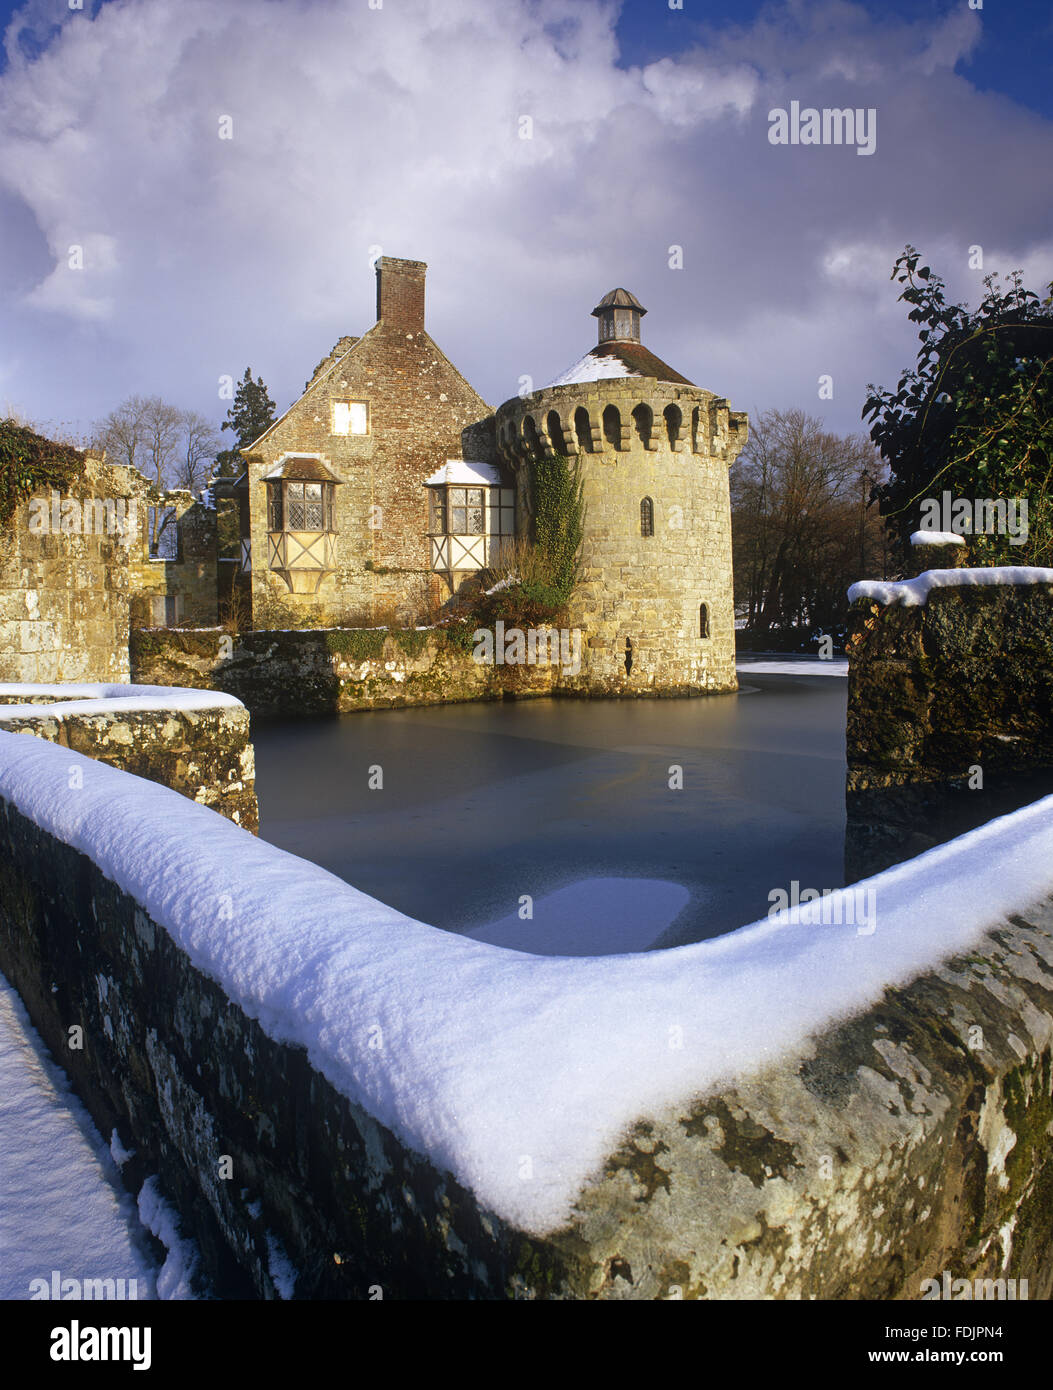 The picturesque fourteenth-century ruined castle and moat in winter, under a heavy snow at Scotney Castle, Lamberhusrt, - Stock Image